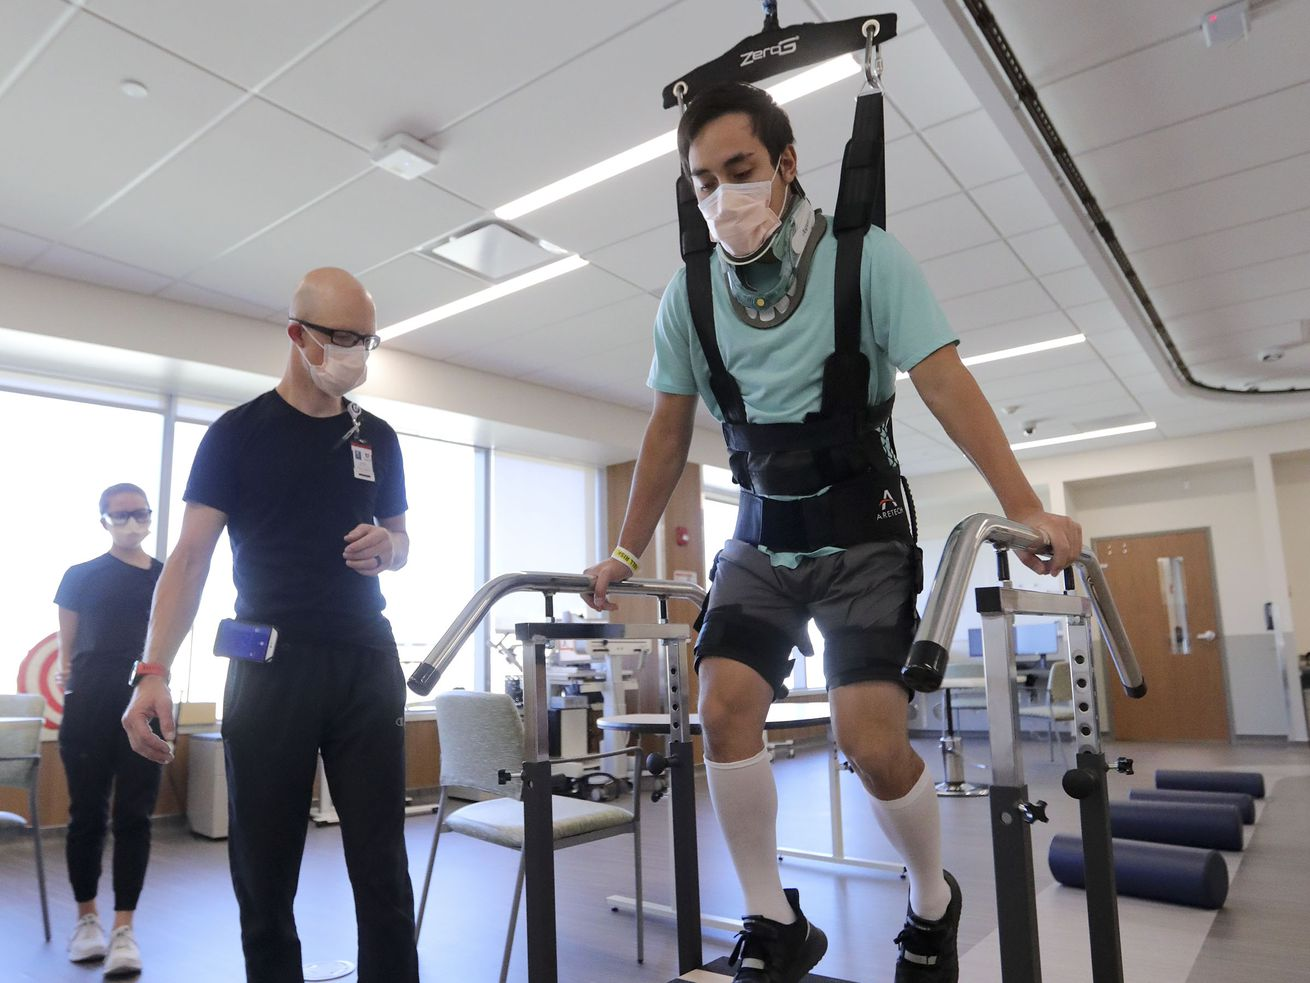 Unique rehabilitation hospital offers patients their best chance at getting their lives back